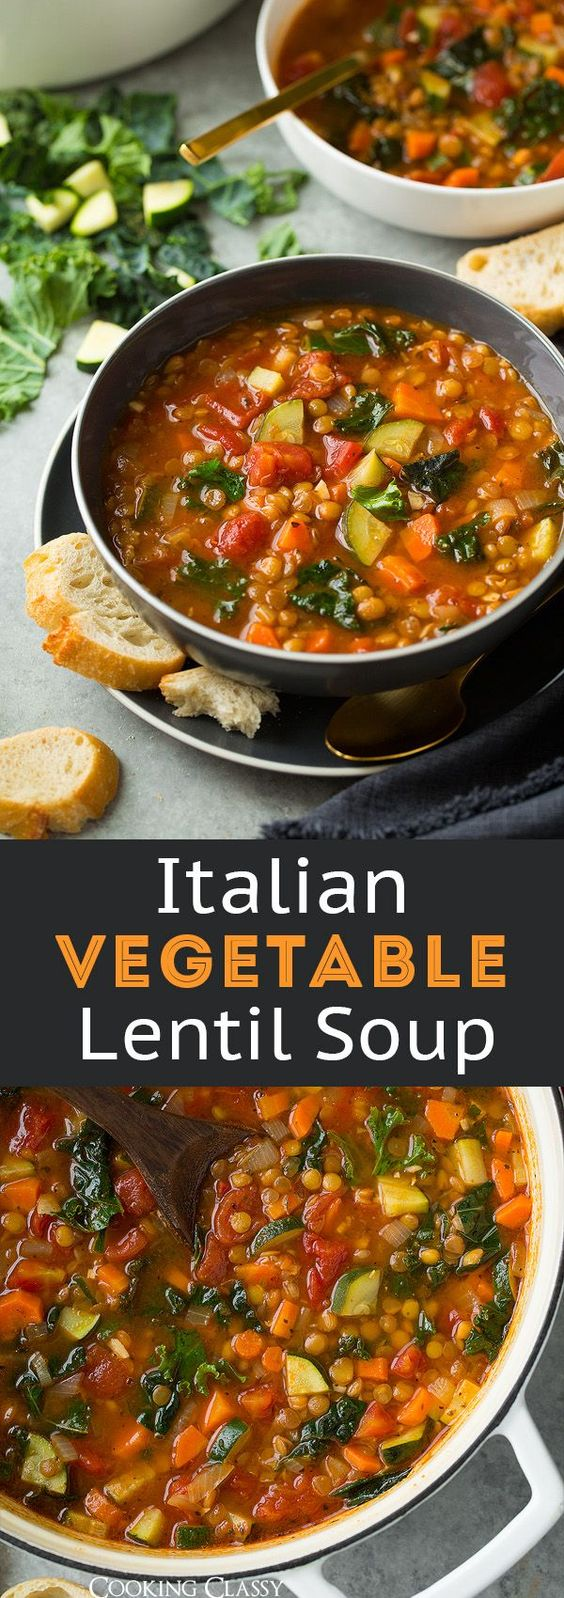 Lentil Soup (Italian Vegetable)  #lentil #lentilsoup #italianfood #italiansoup #soup #souprecipes #healthysouprecipes #italianvegetable